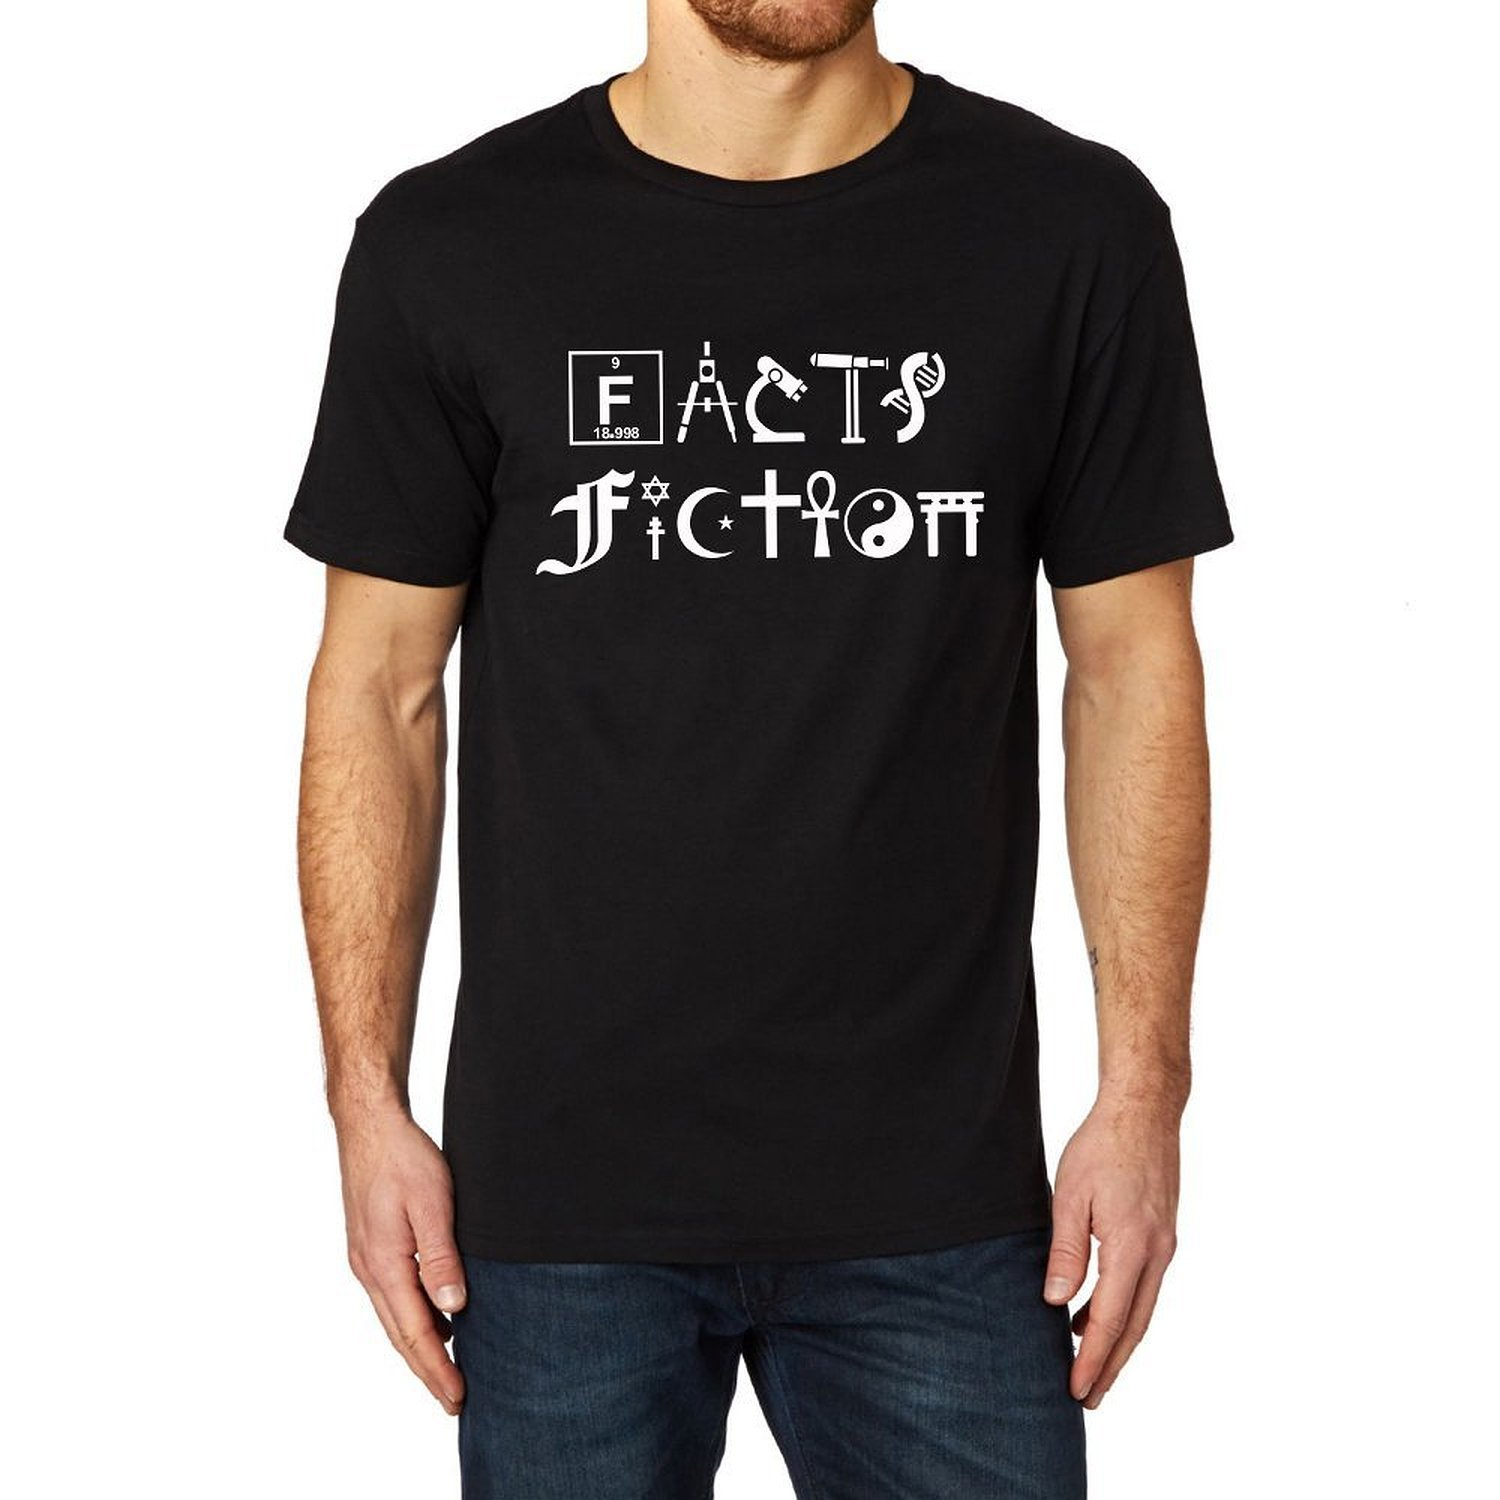 Loo Show S Facts Fiction Science Black T Shirt Tee